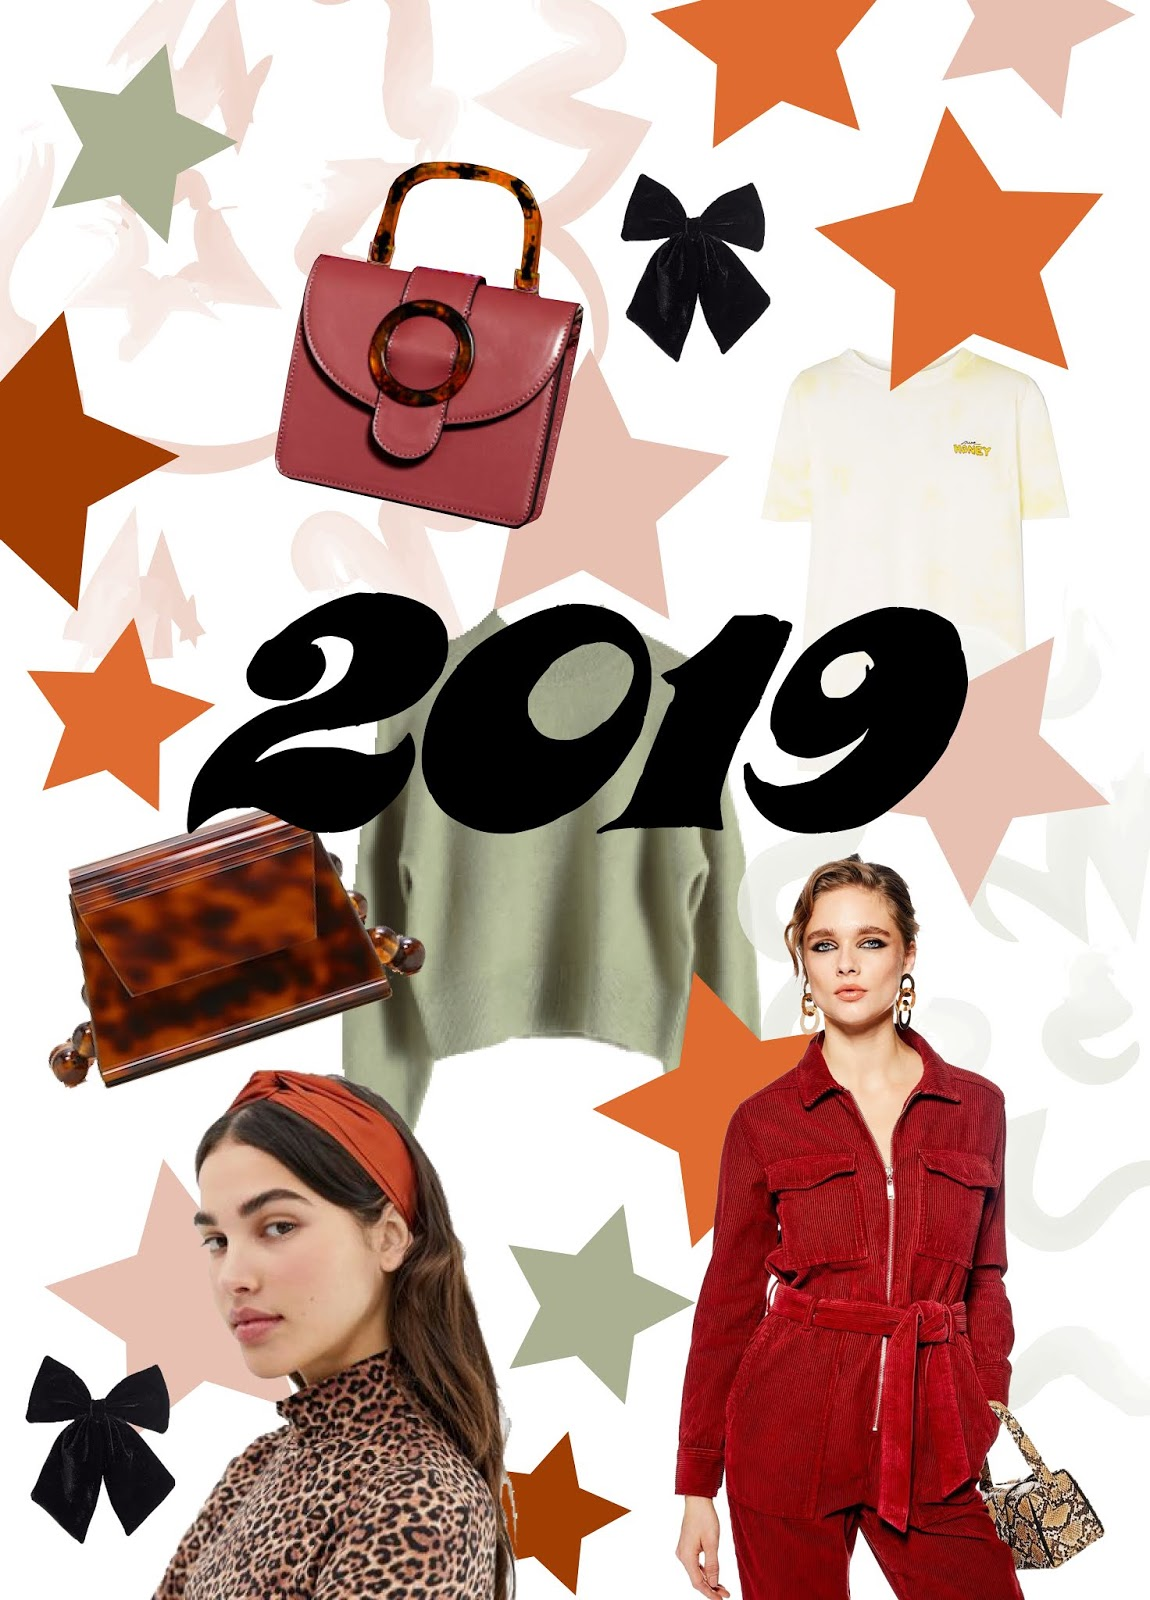 2019 fashion trends collage